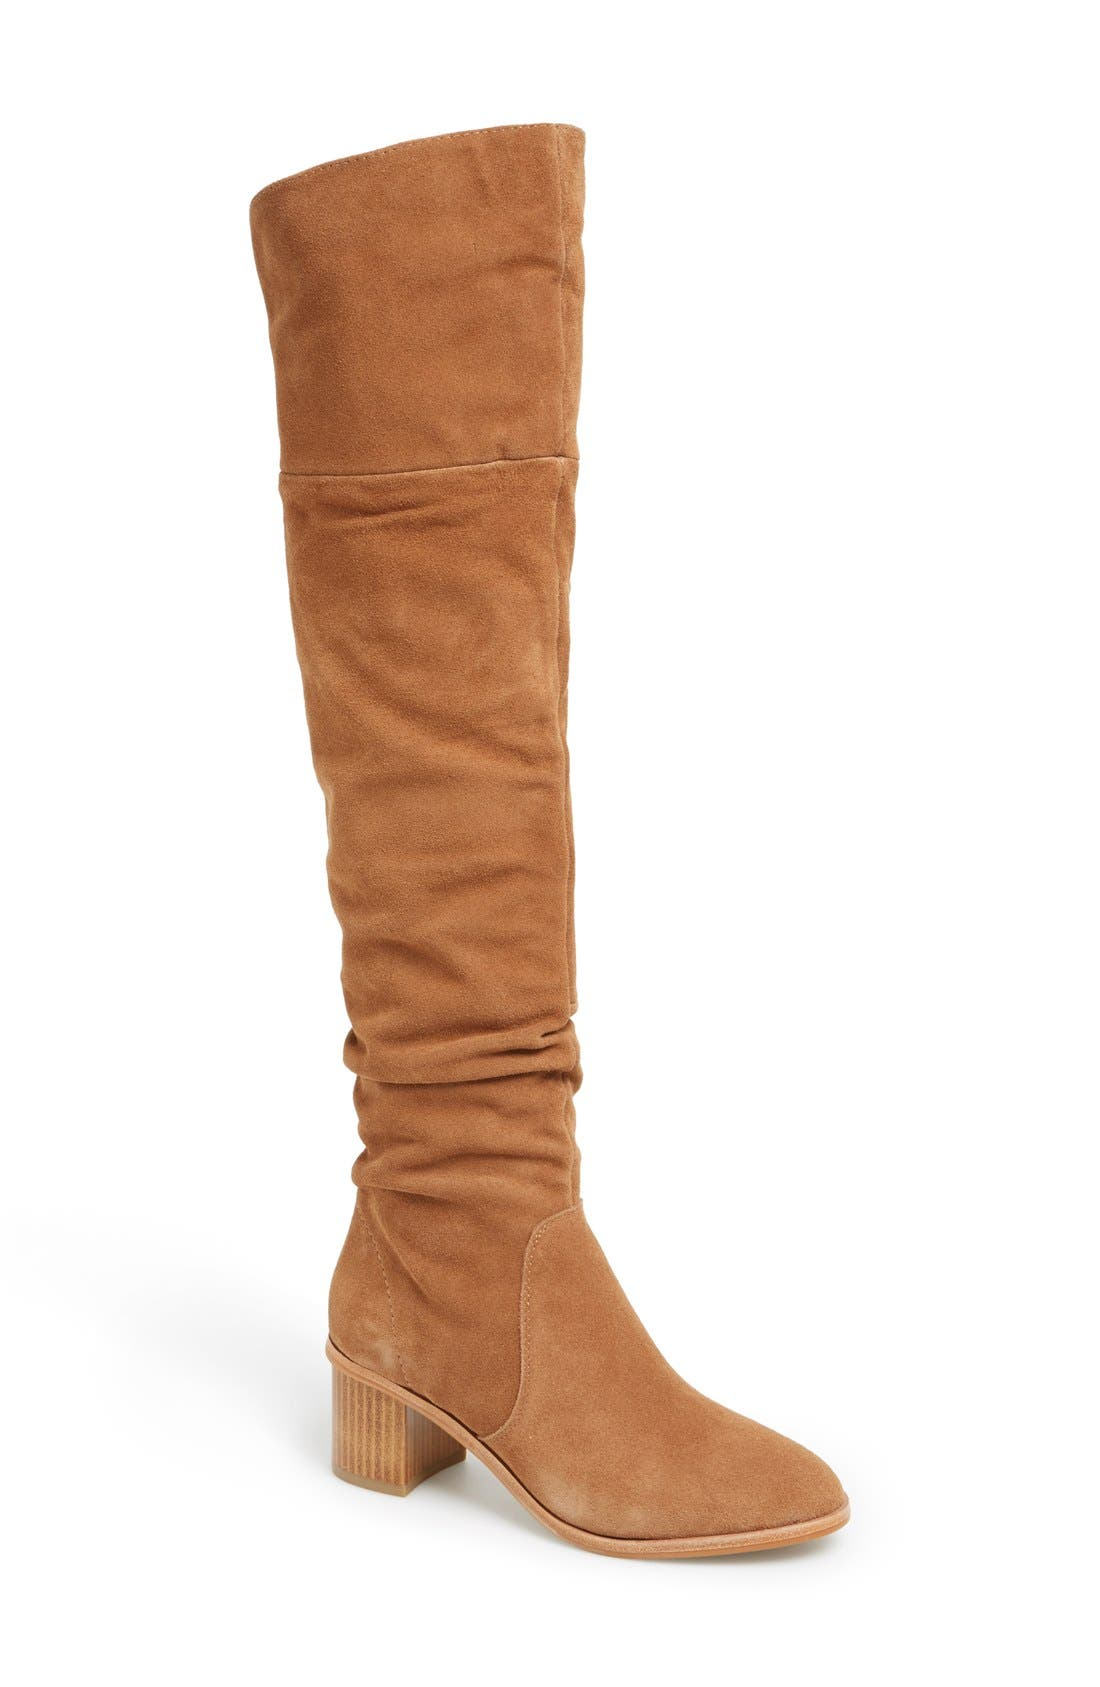 Alternate Image 1 Selected - French Connection 'Clementina' Over the Knee Boot (Women)